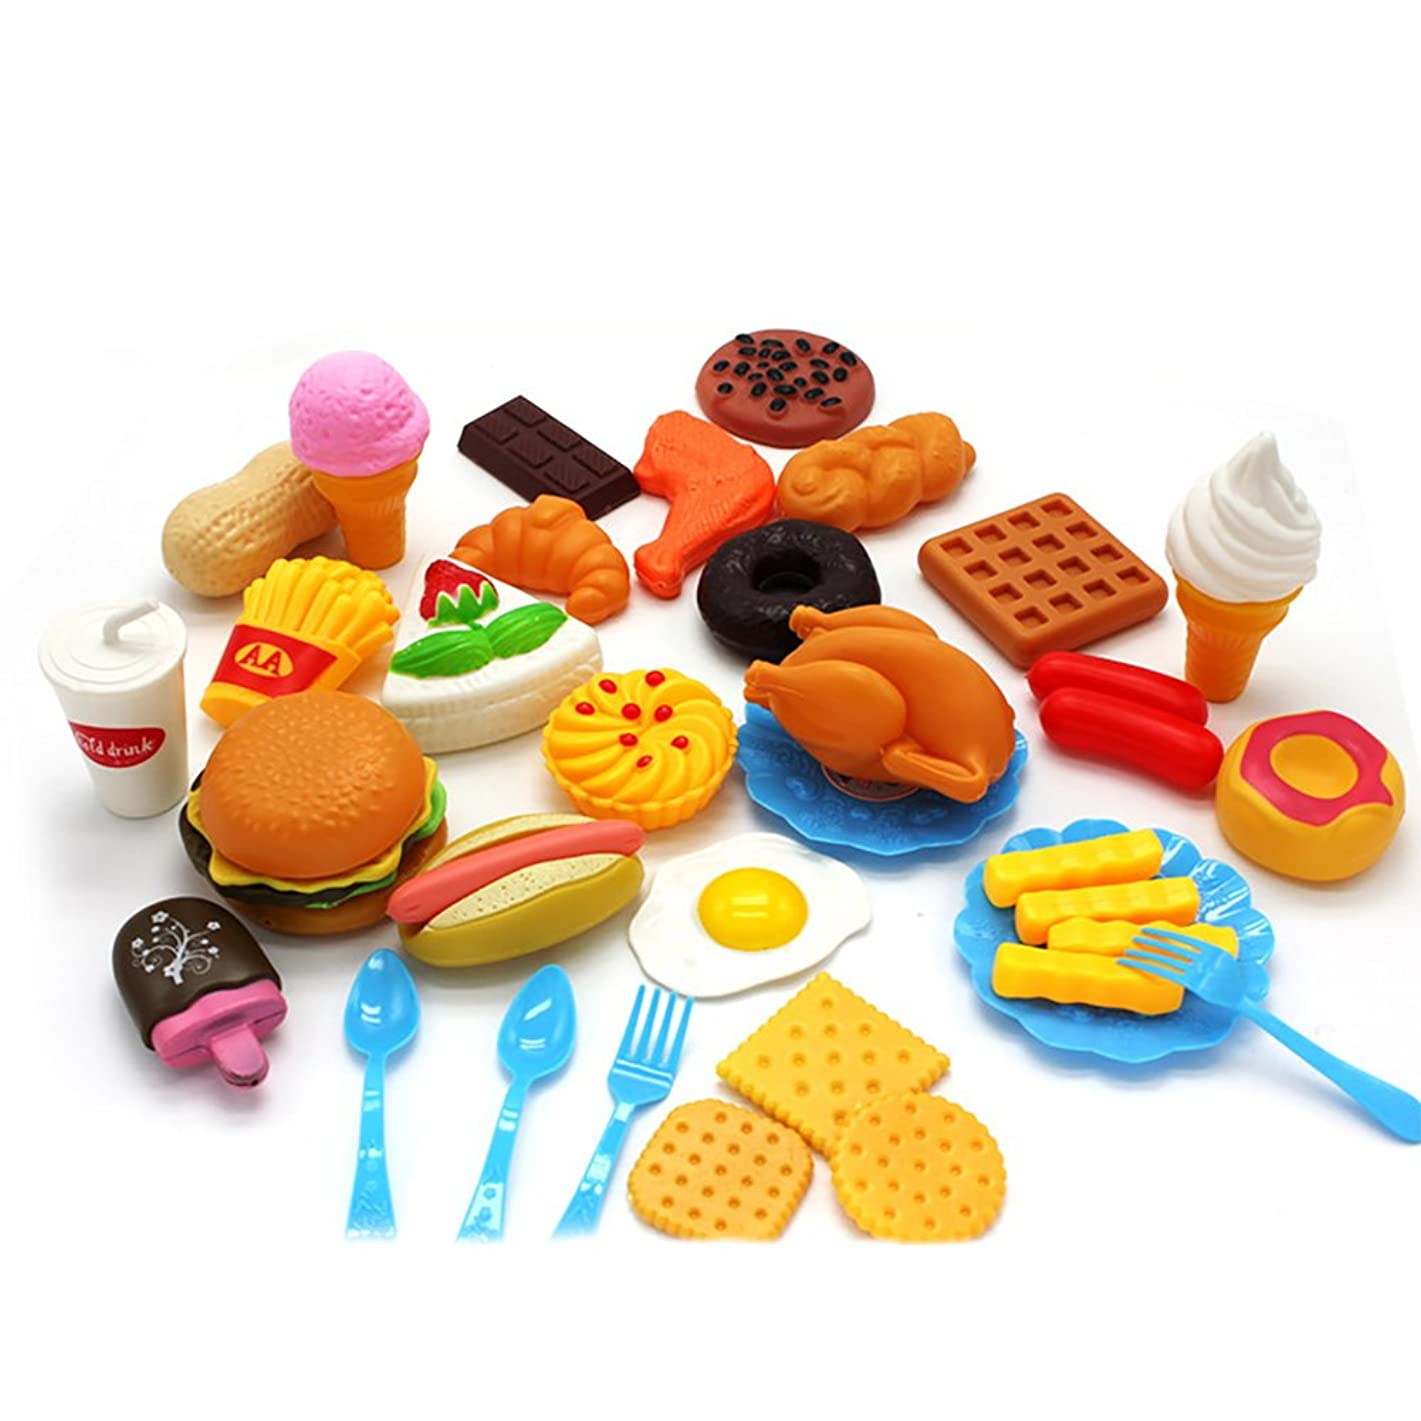 Ocamo Children Fast Food Playset Mini Hamburg French Fries Hot Dog Ice Cream Cola Food Toys for Kids Pretend Play Gift 34 Without a Basket